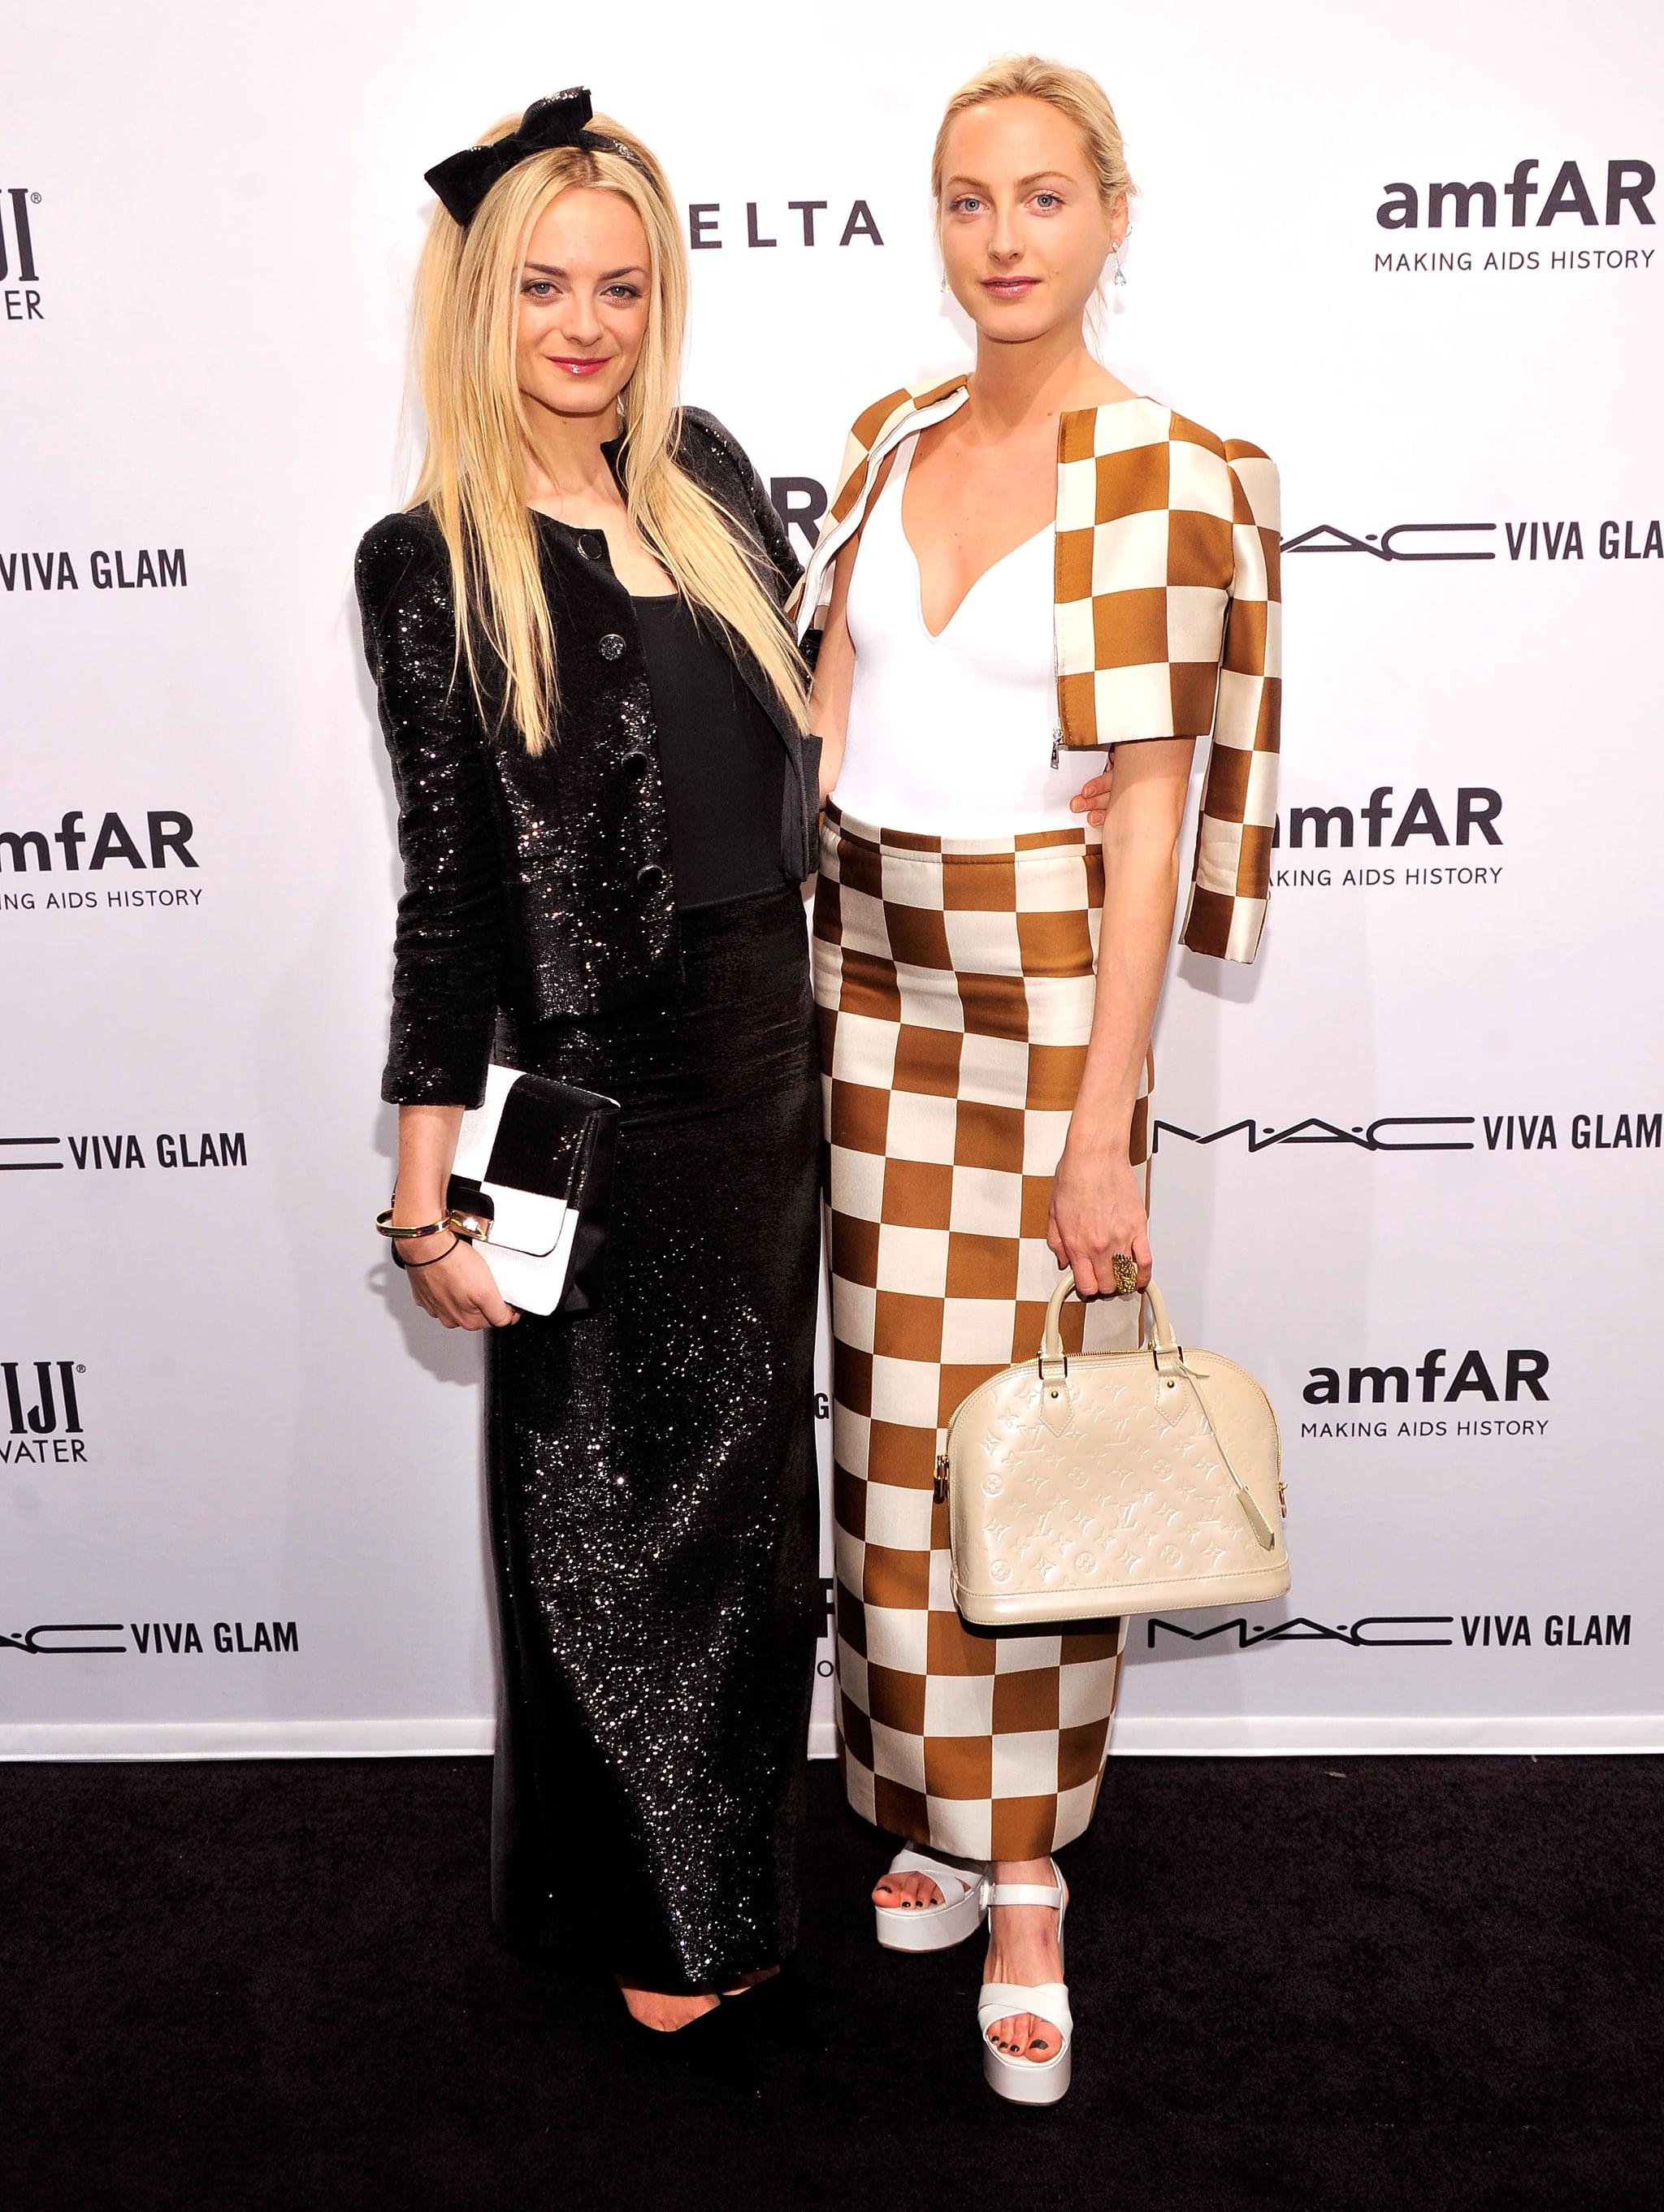 Virginie Courtin-Clarins and Claire Courtin-Clarins were arm in arm at the amfAR New York Gala.